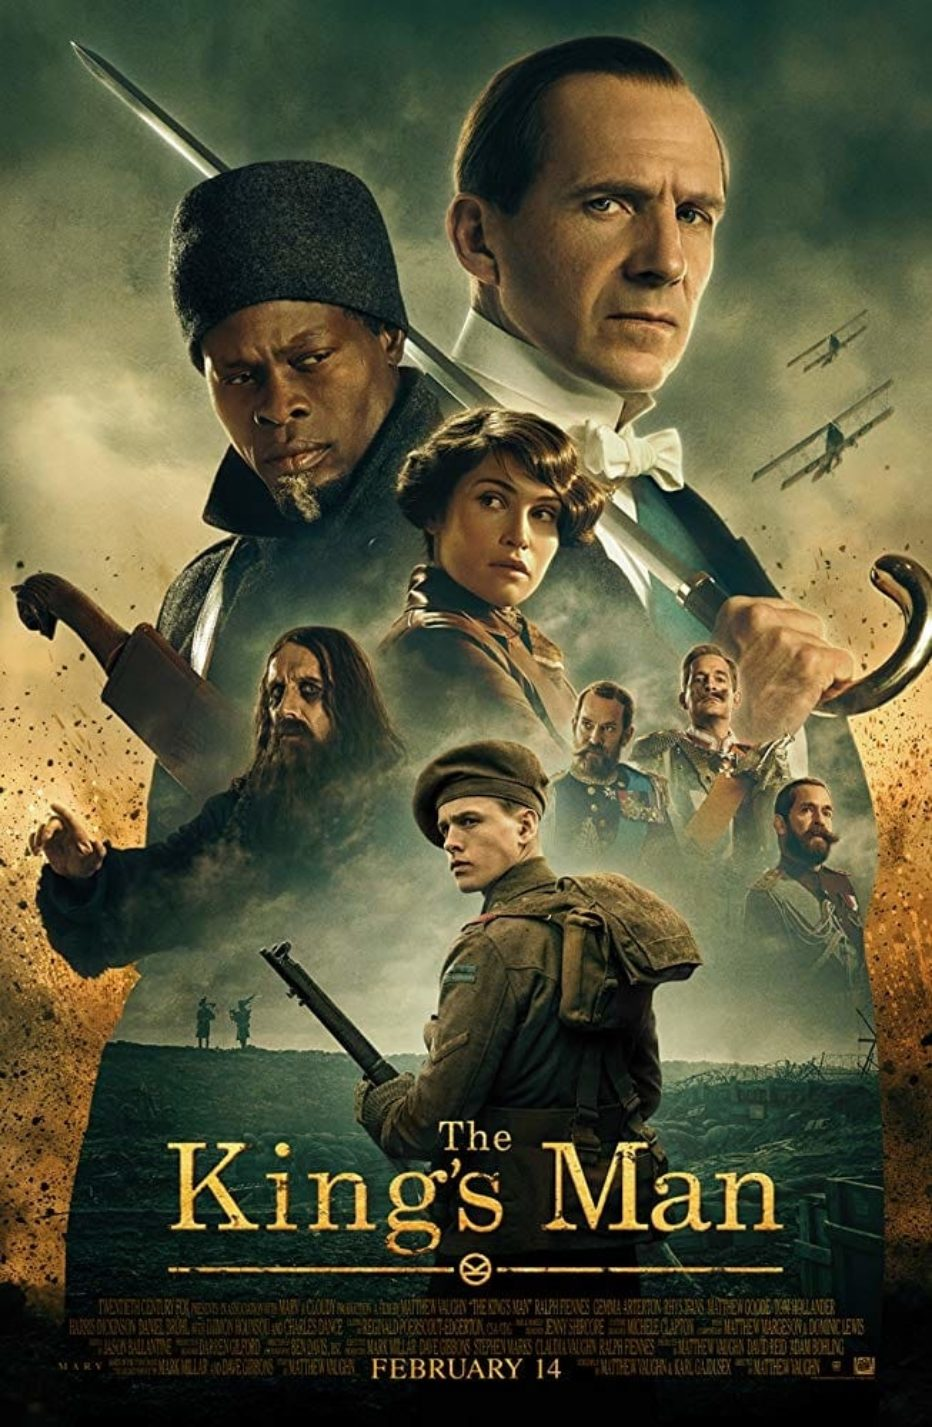 Segundo trailer de The King's Man